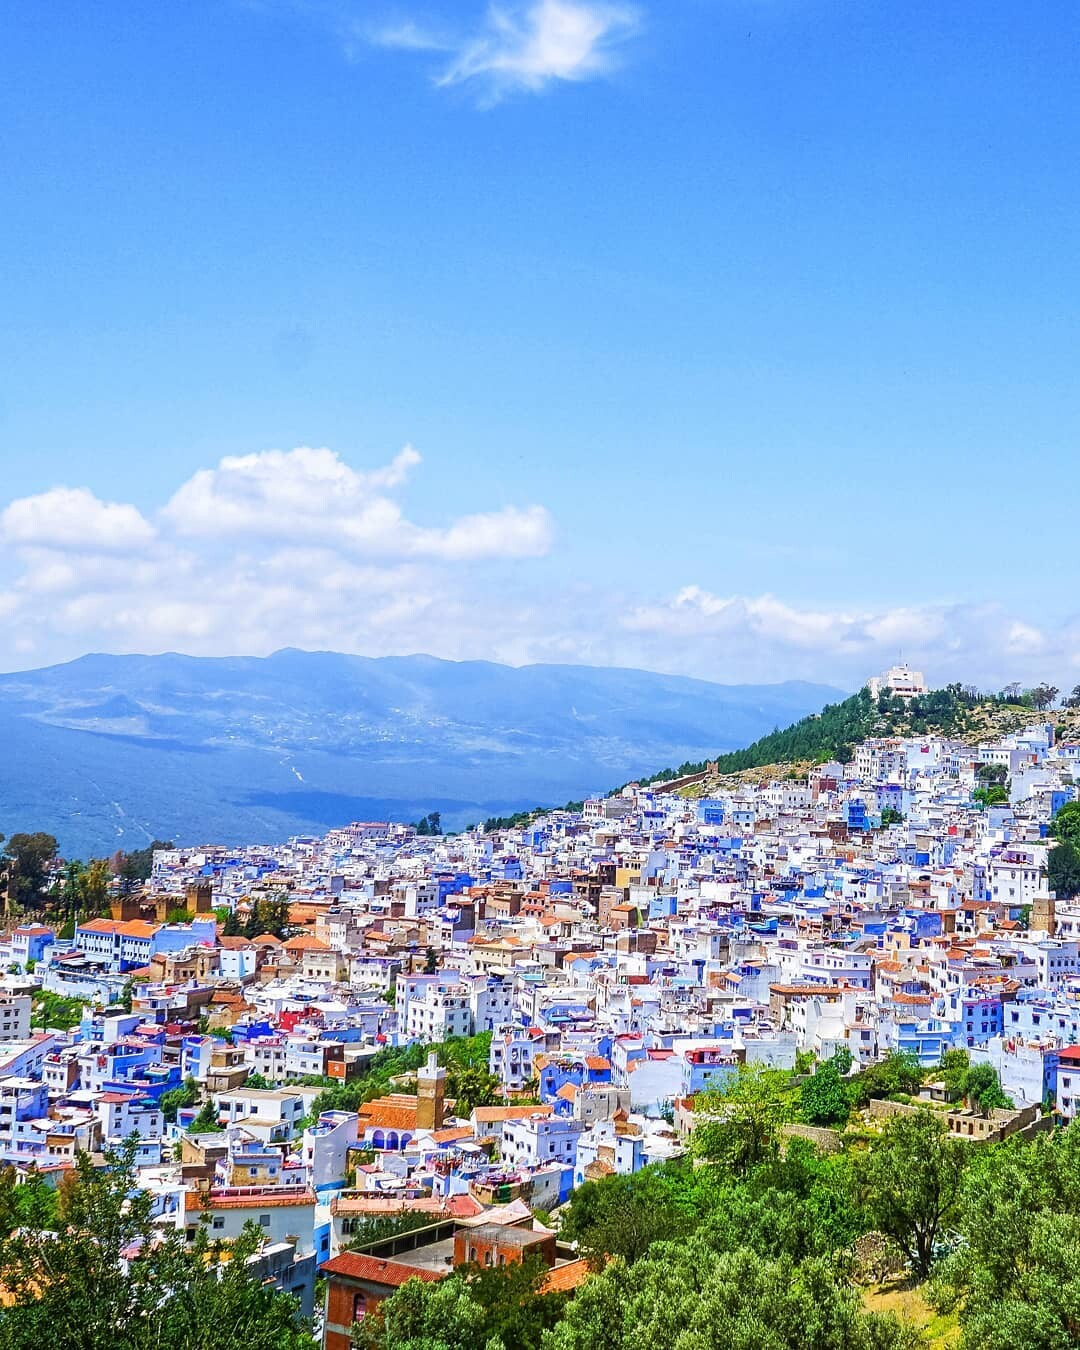 Our trip from Tangier will be to Chefchaouen here.